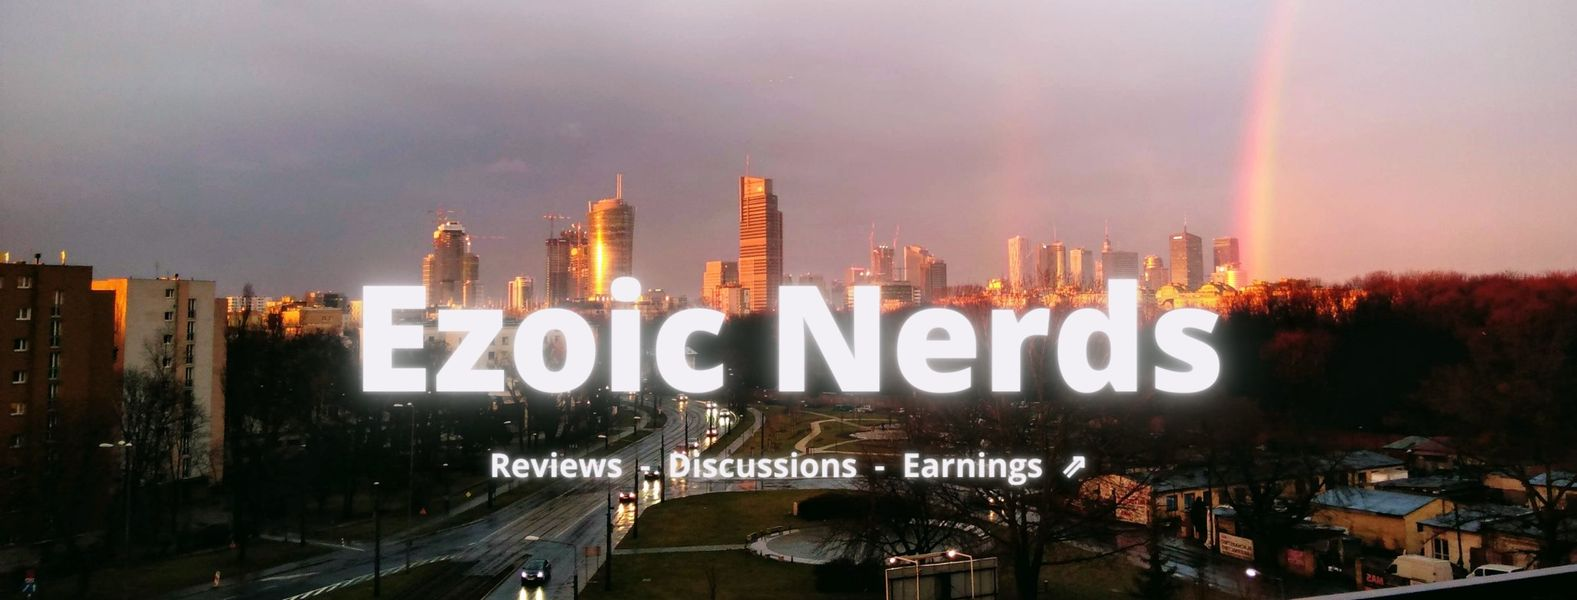 Discuss income from the site of 1000 visitors on our Ezoic Nerds Facebook group